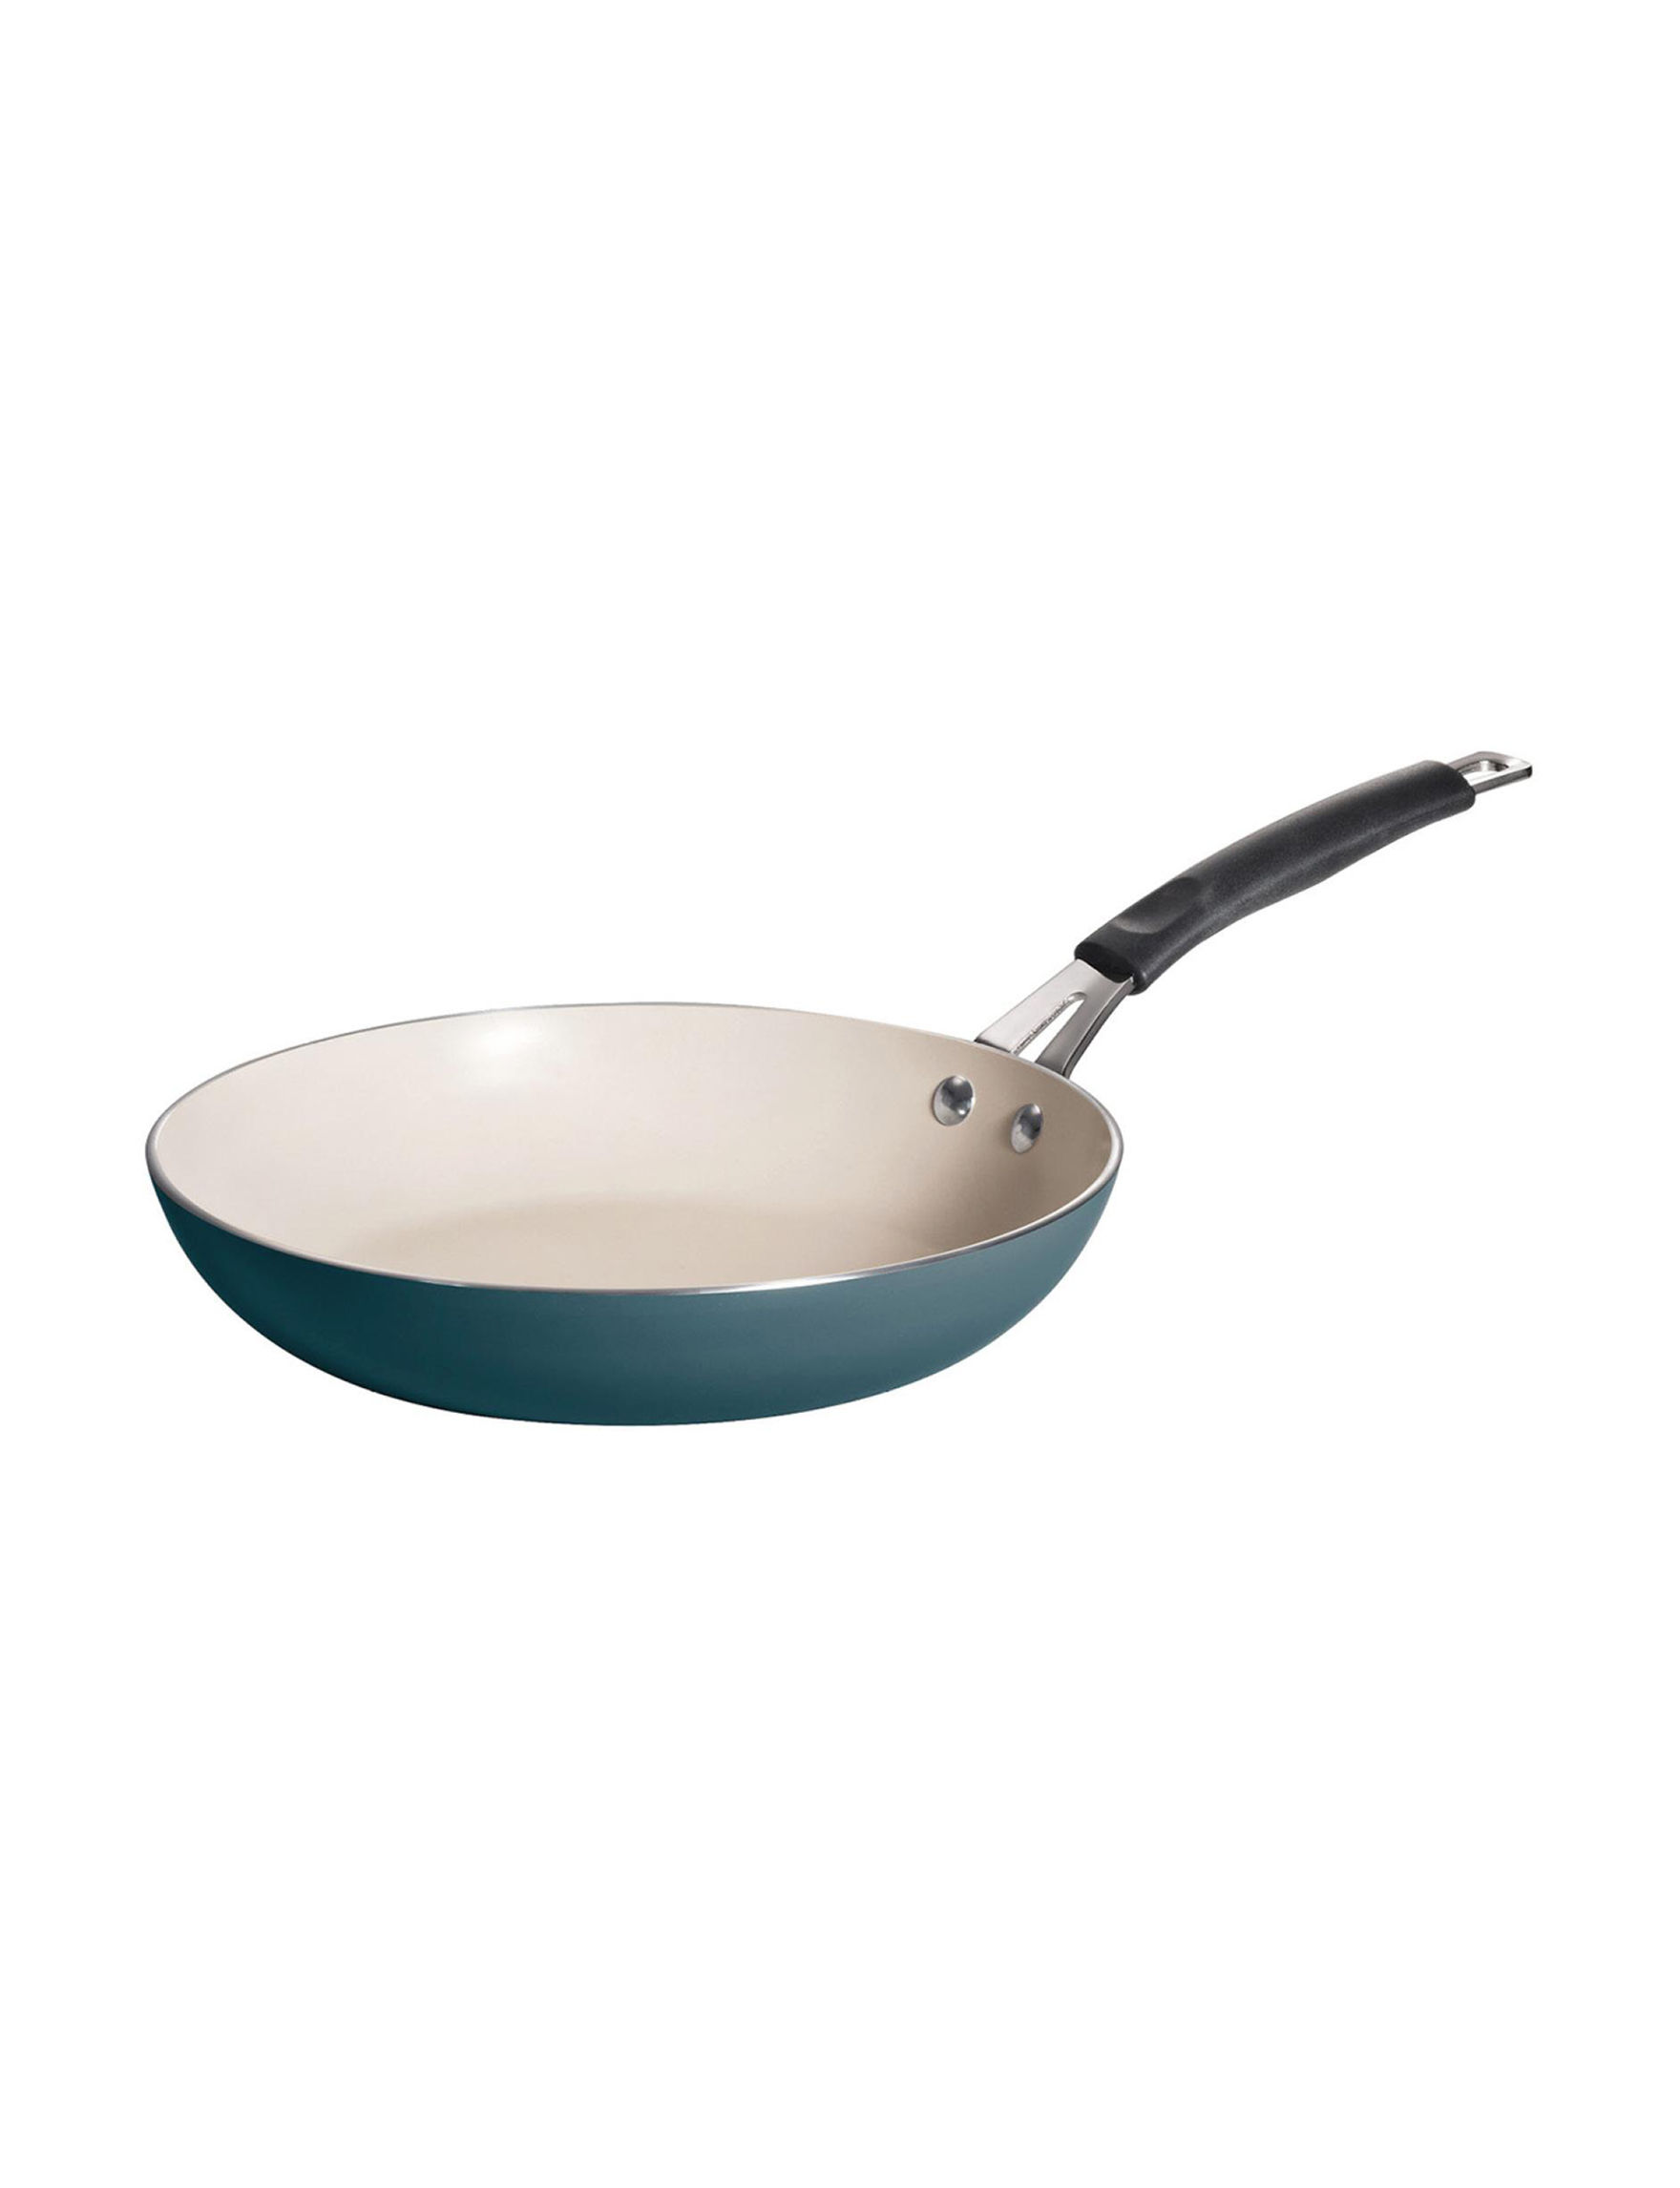 Tramontina Teal Frying Pans & Skillets Cookware